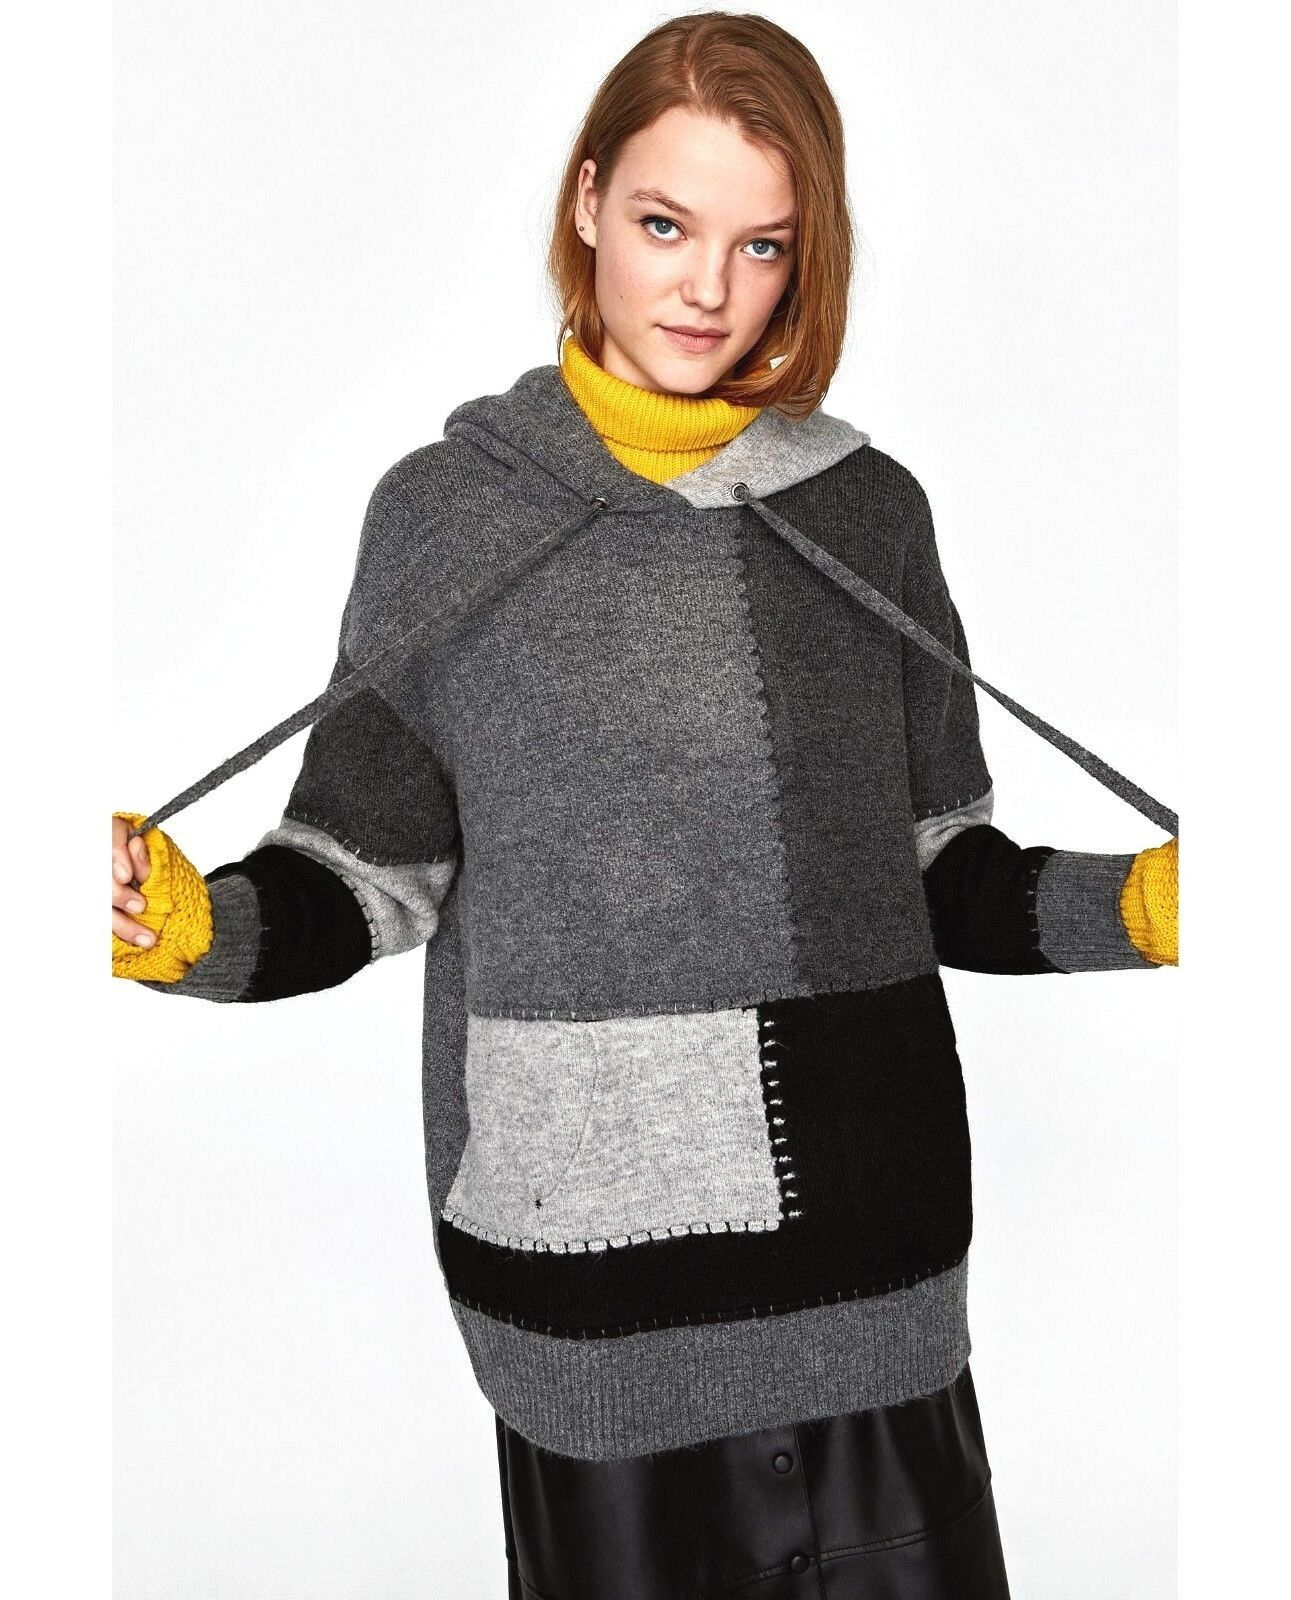 ZARA DARK GREY RELAXED FIT PATCHWORK PATCHWORK PATCHWORK KNIT SWEATER JUMPER WITH HOOD SIZE S d60231